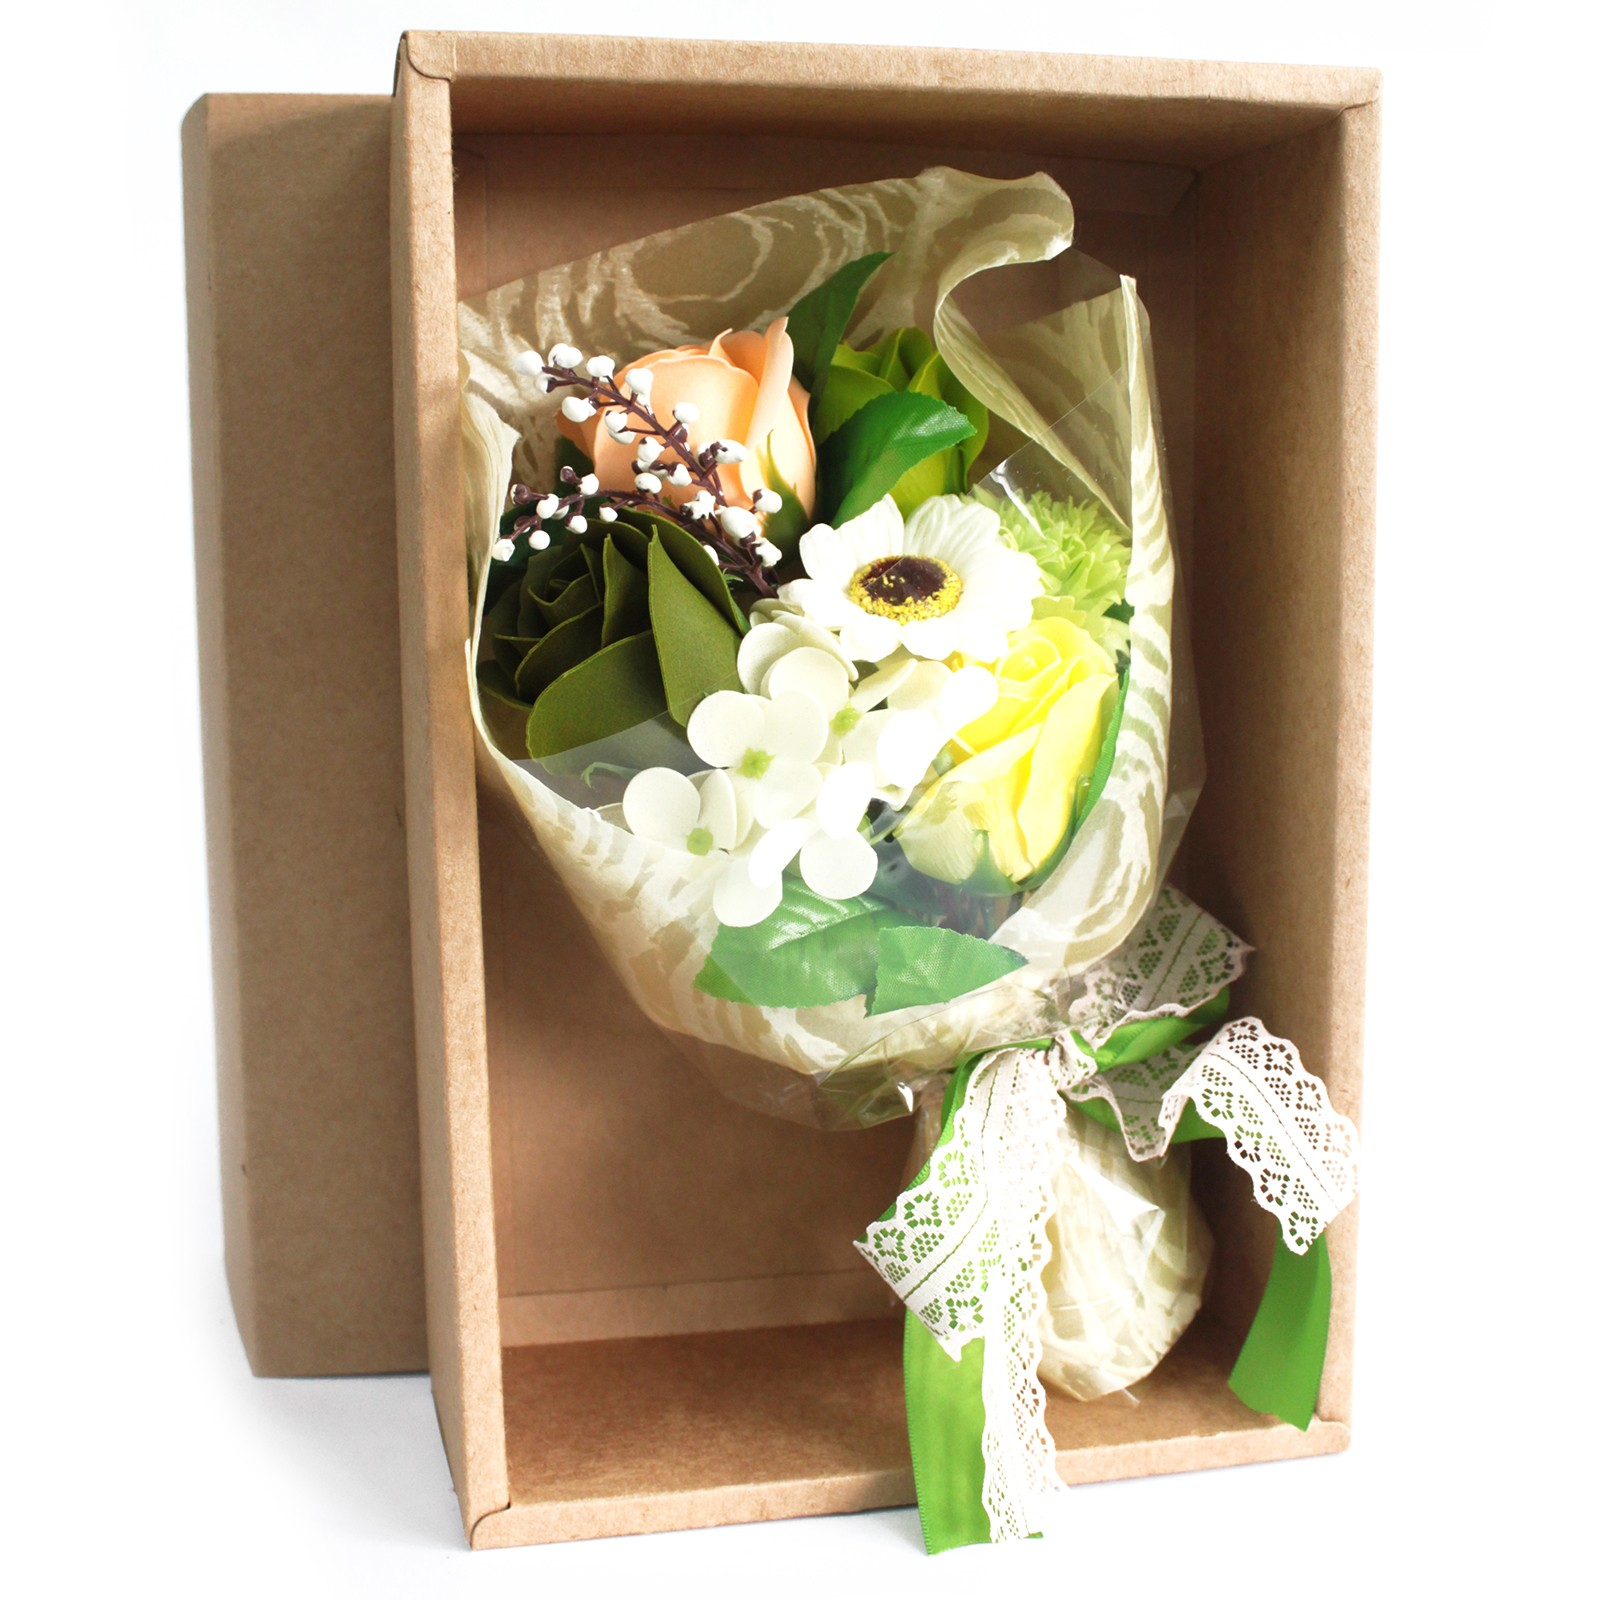 Boxed Hand Soap Flower Bouquet Greens